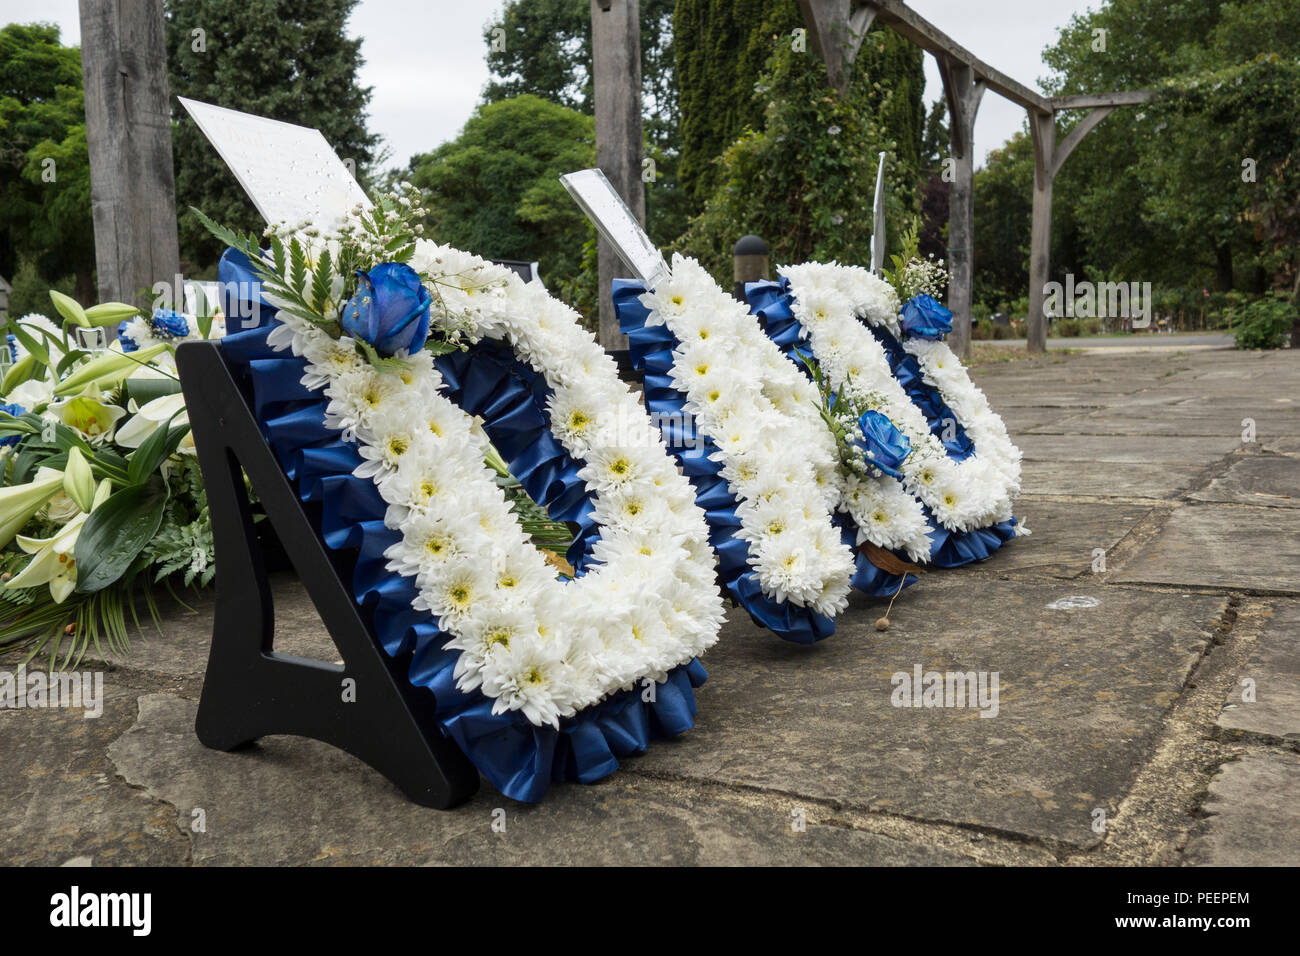 Dad funeral tribute wreath outside a crematoria in london uk stock dad funeral tribute wreath outside a crematoria in london uk izmirmasajfo